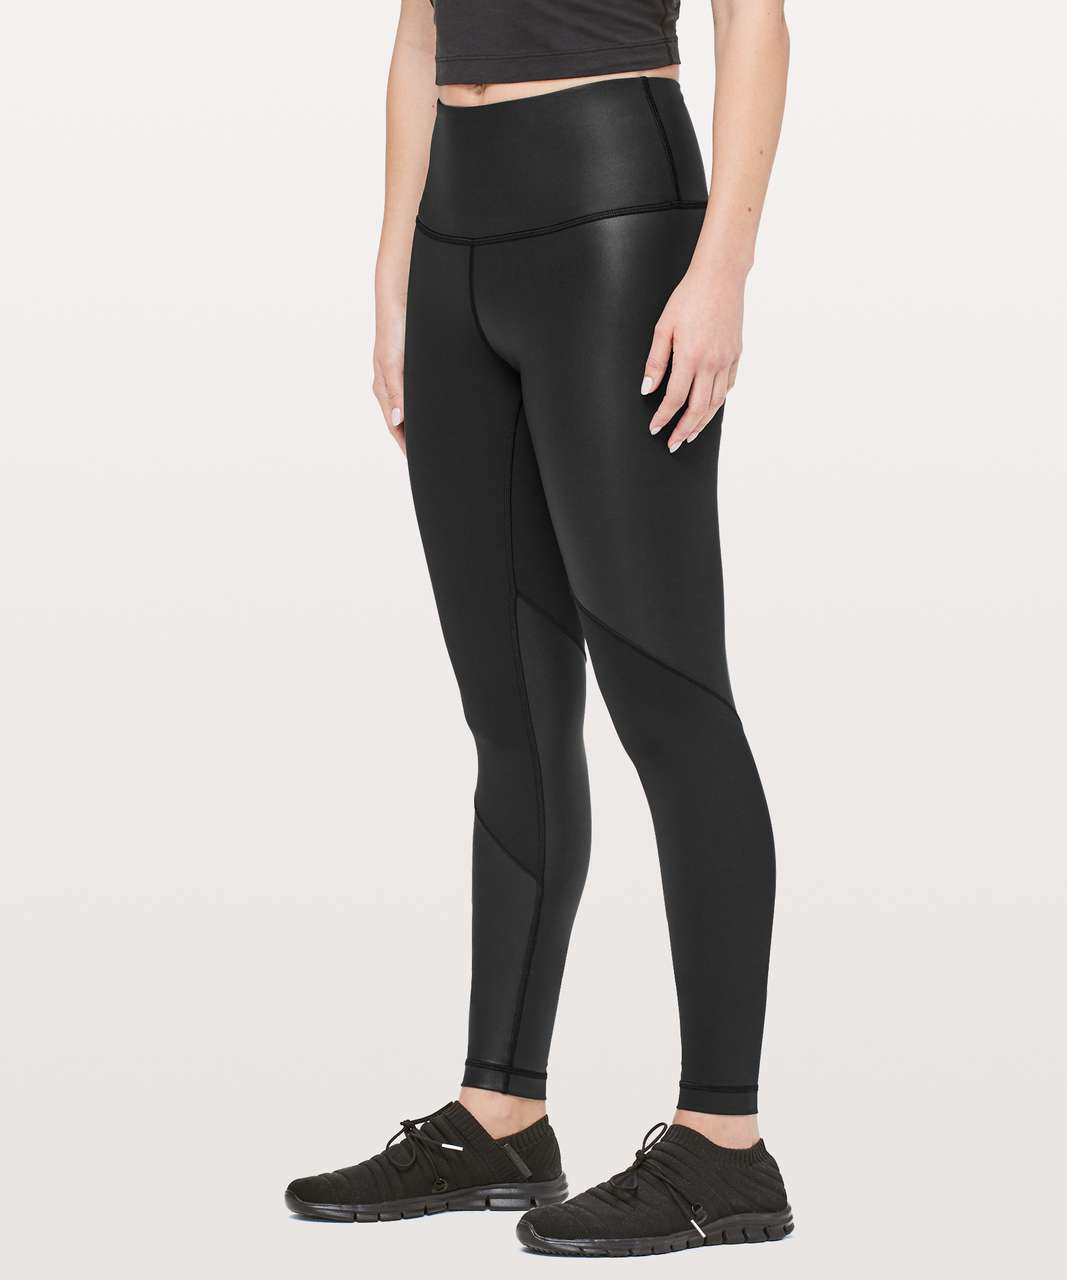 Lululemon Wunder Under Pant *Cire Wrap - Black